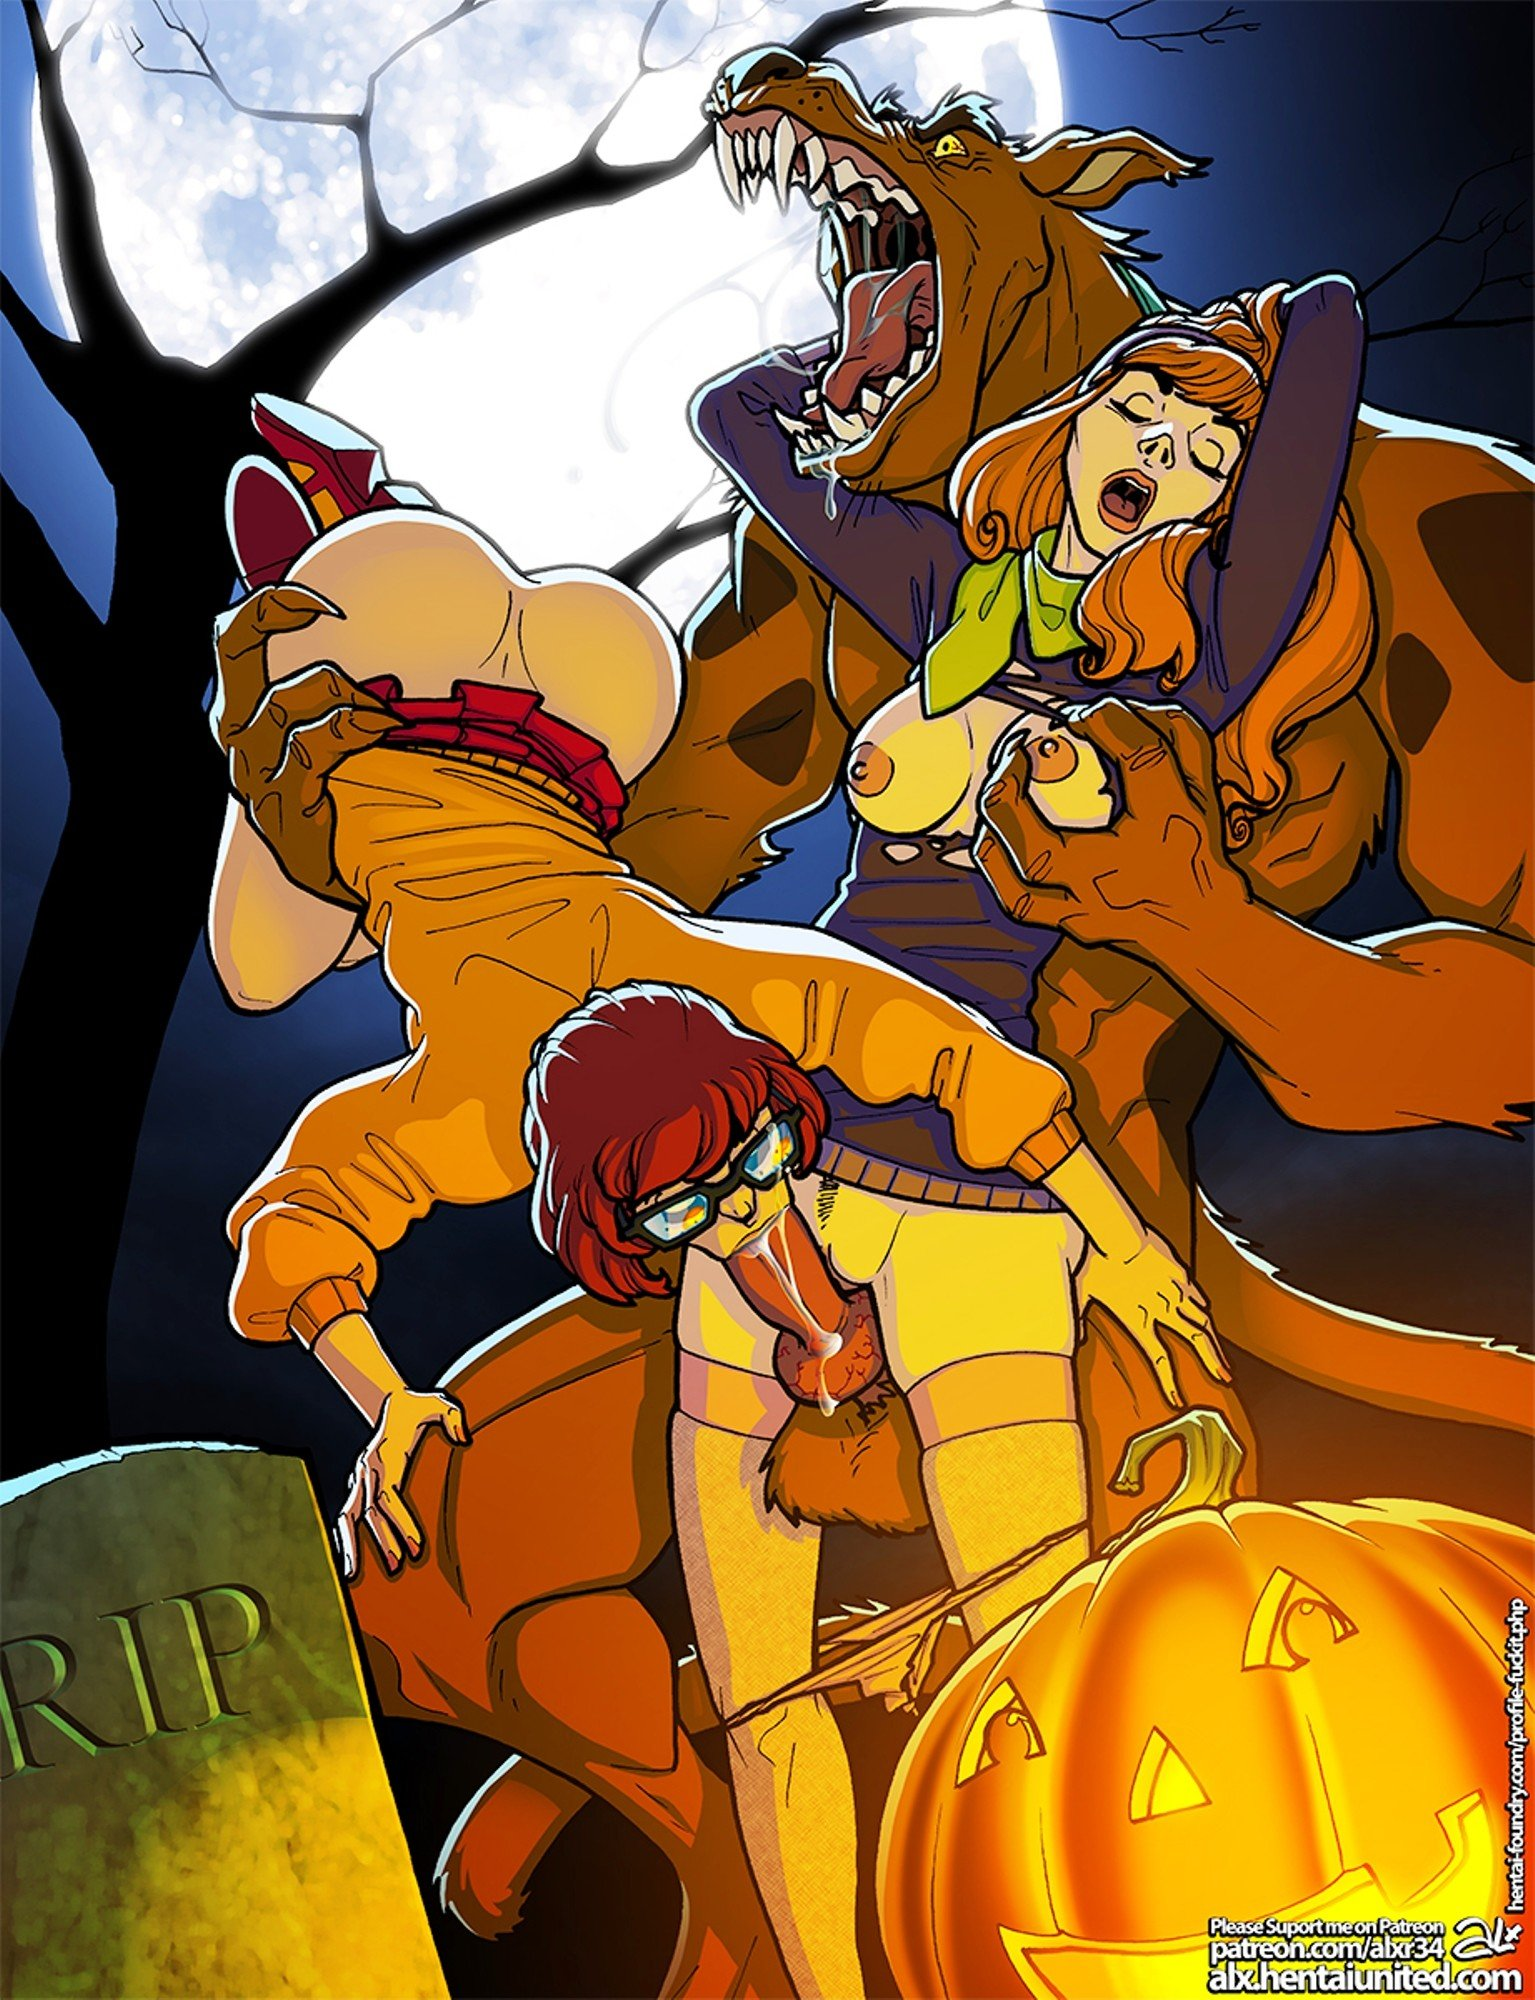 daphne from scooby doo geting raped newd